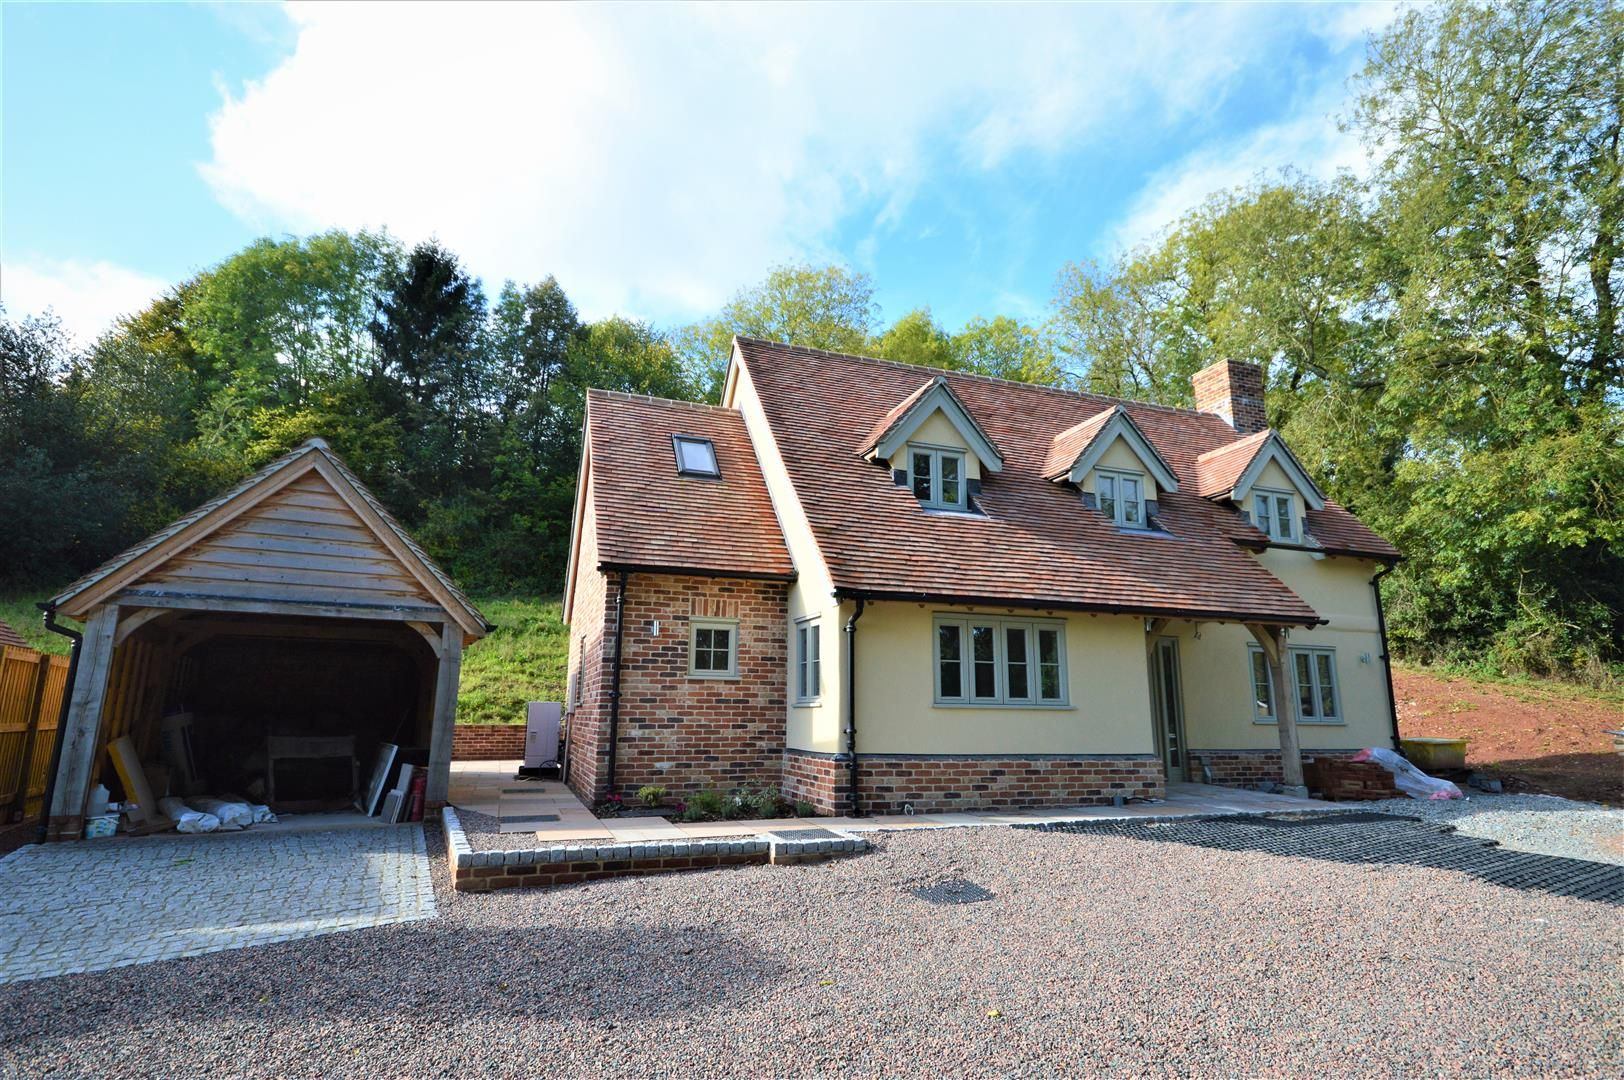 3 bed house for sale in Dilwyn 1